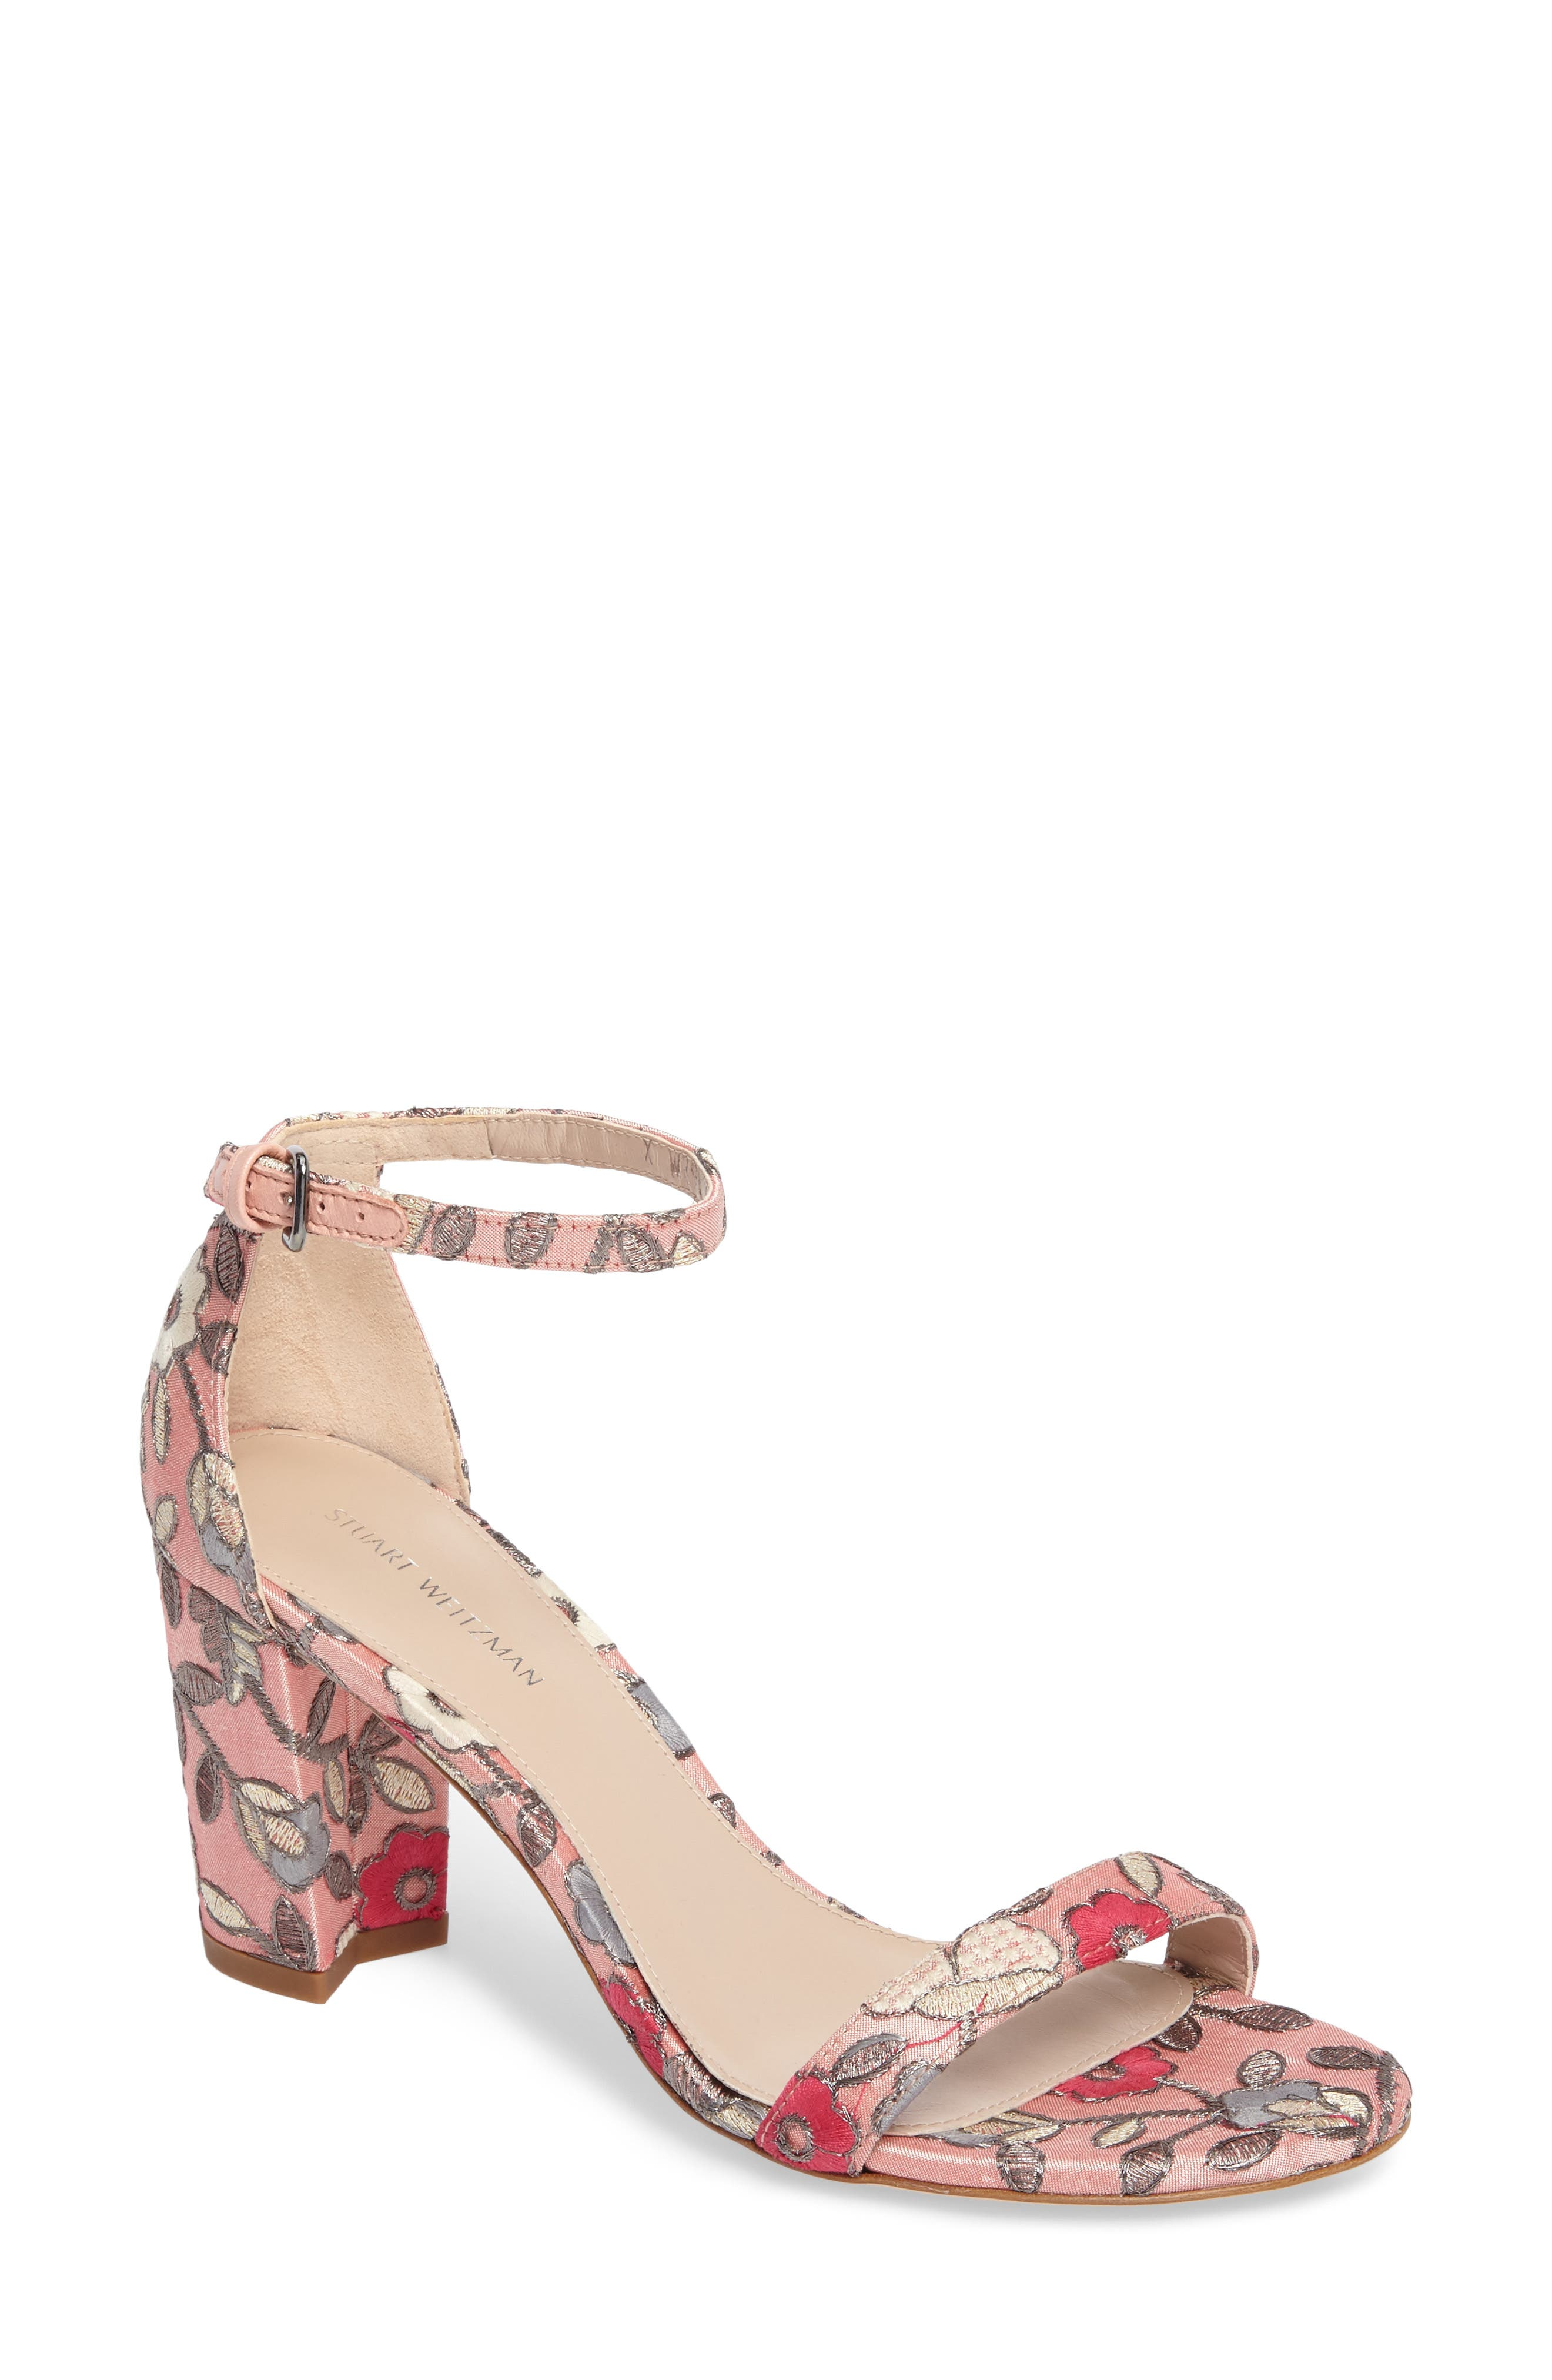 Alternate Image 1 Selected - Stuart Weitzman NearlyNude Ankle Strap Sandal (Women)